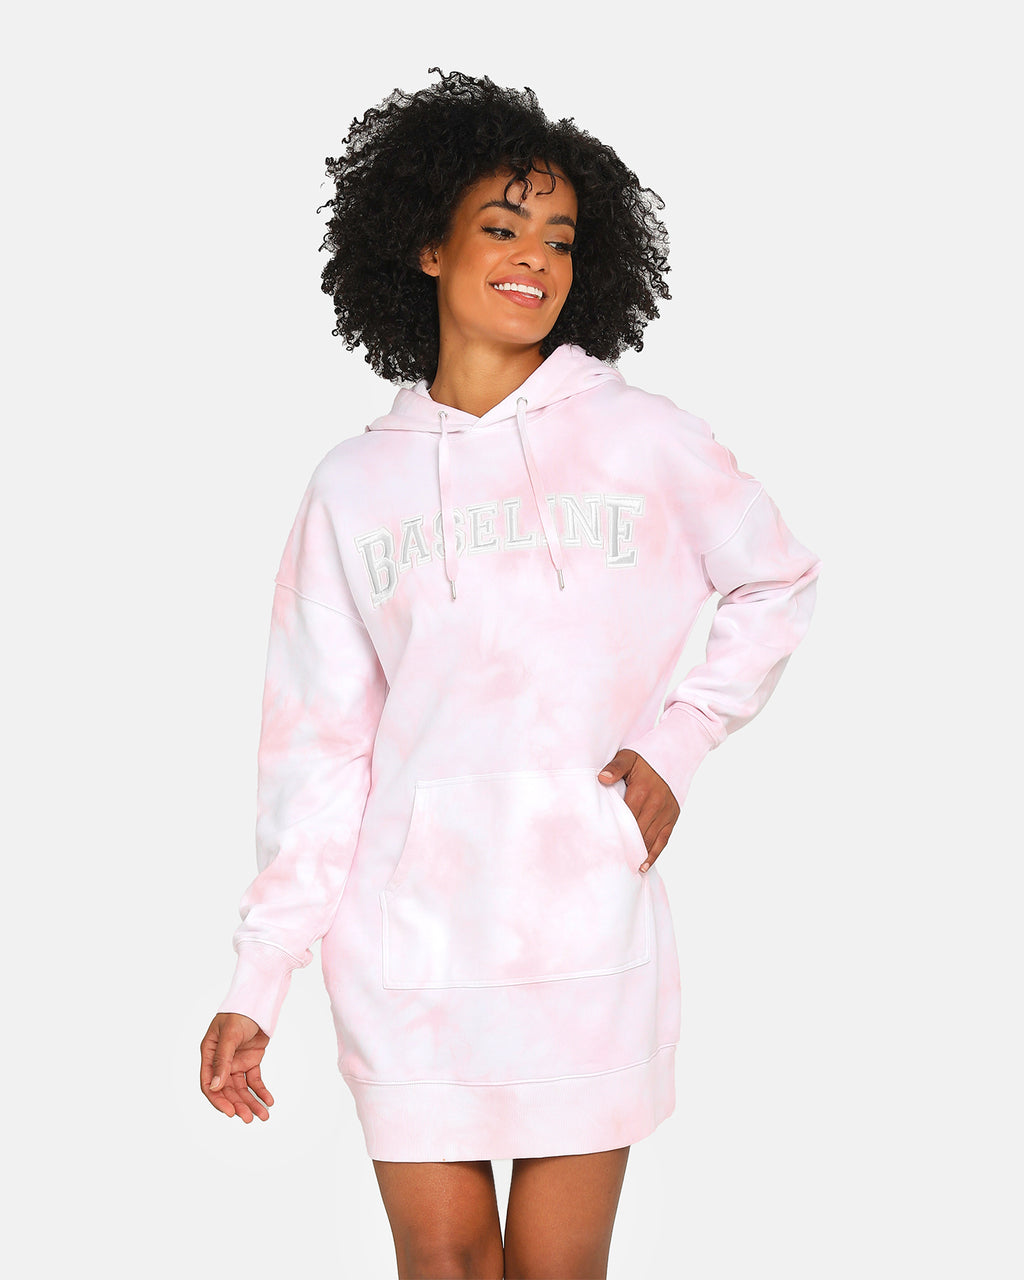 Baseline Stand Out Hooded Dress Pastel Pink Tie Dye